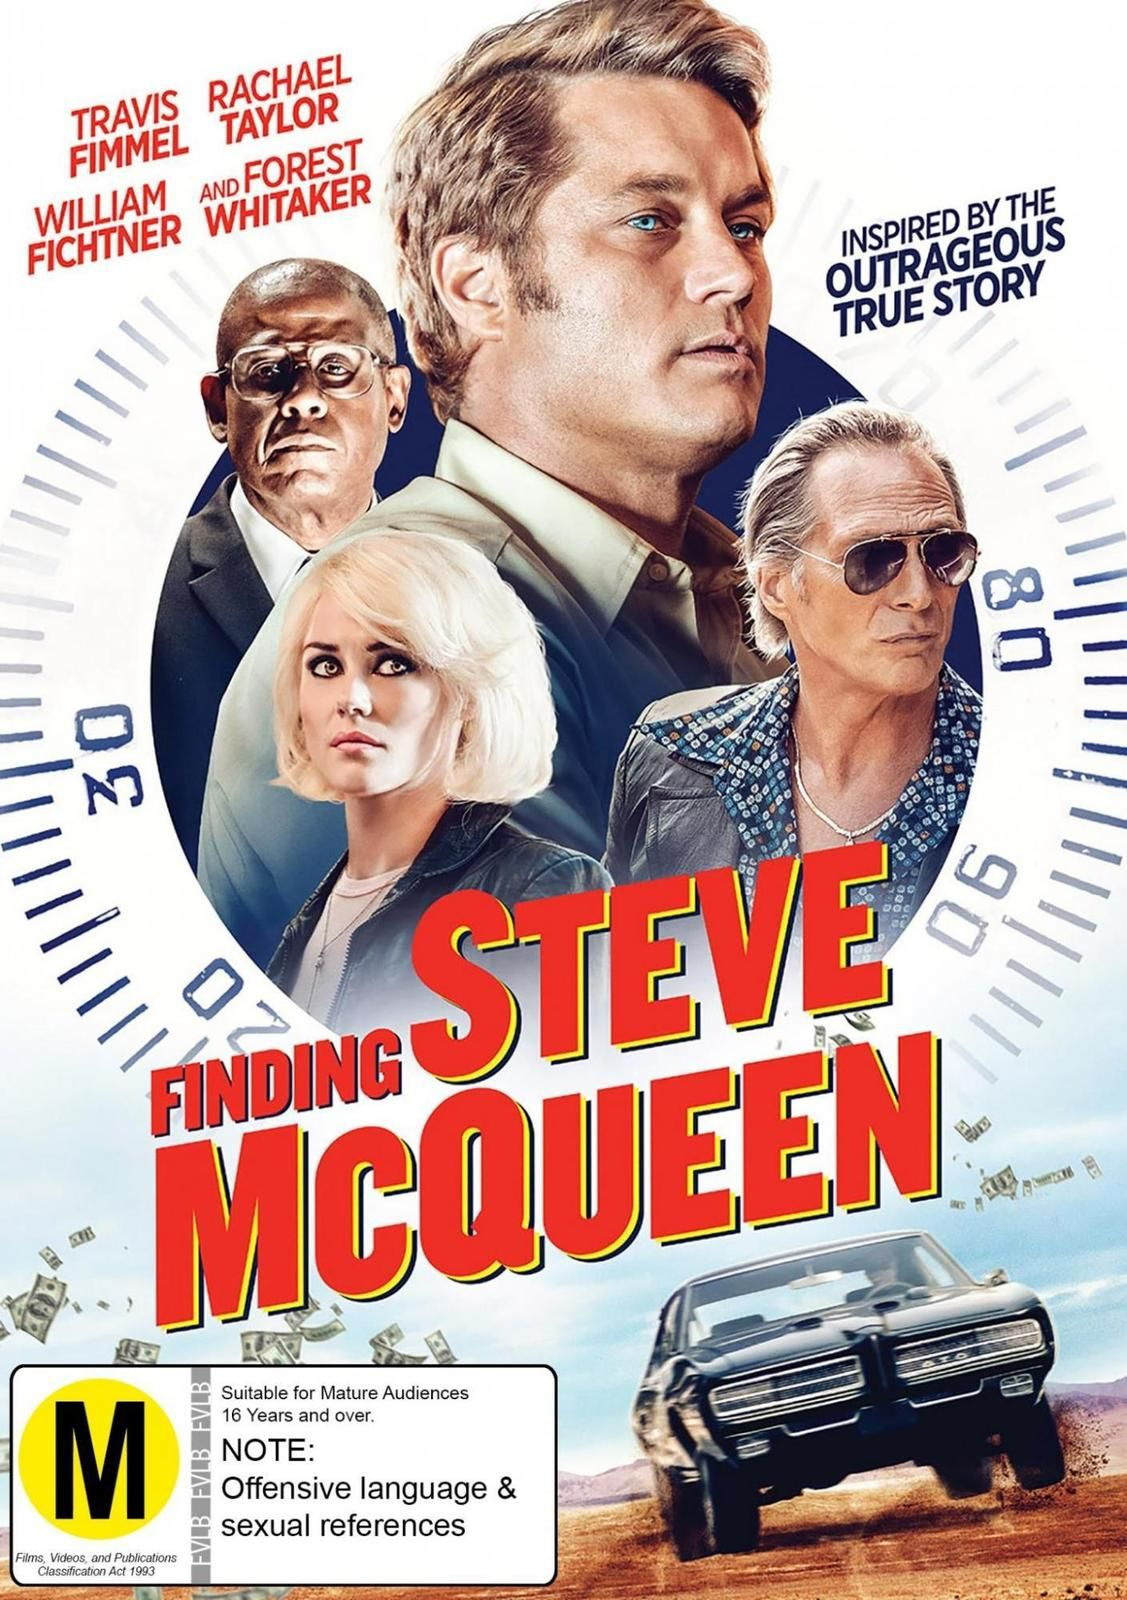 Inspired by an outrageous true story, Finding Steve McQueen is a taleof small-time criminals, a big-time heist and is a fun caper with a winning castthat includes Travis Fimmel, Rachael Taylor and Forest WhittakerWhen an unlikely gang of thieves attempt to steal $30 million from PresidentRichard Nixon's secret stash of illegal campaign contributions, the plan goessideways, prompting one of the biggest manhunts in FBI history. A tale ofsmall-time criminals and a big-time heist, this fun caper has